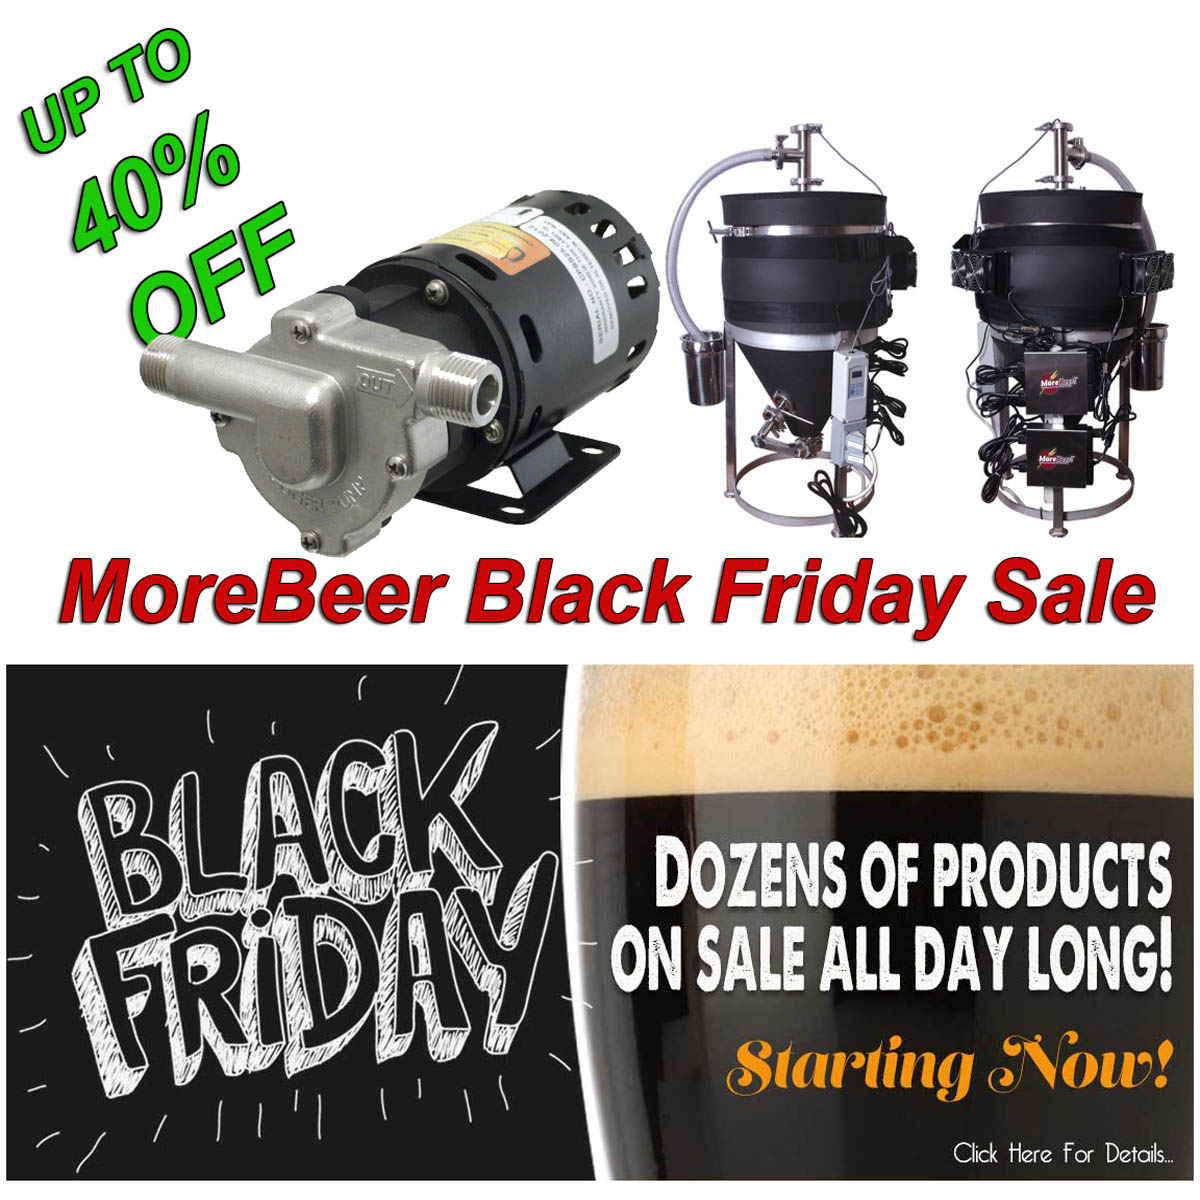 MoreBeer MoreBeer Black Friday Sale Going On Now Promo Codes